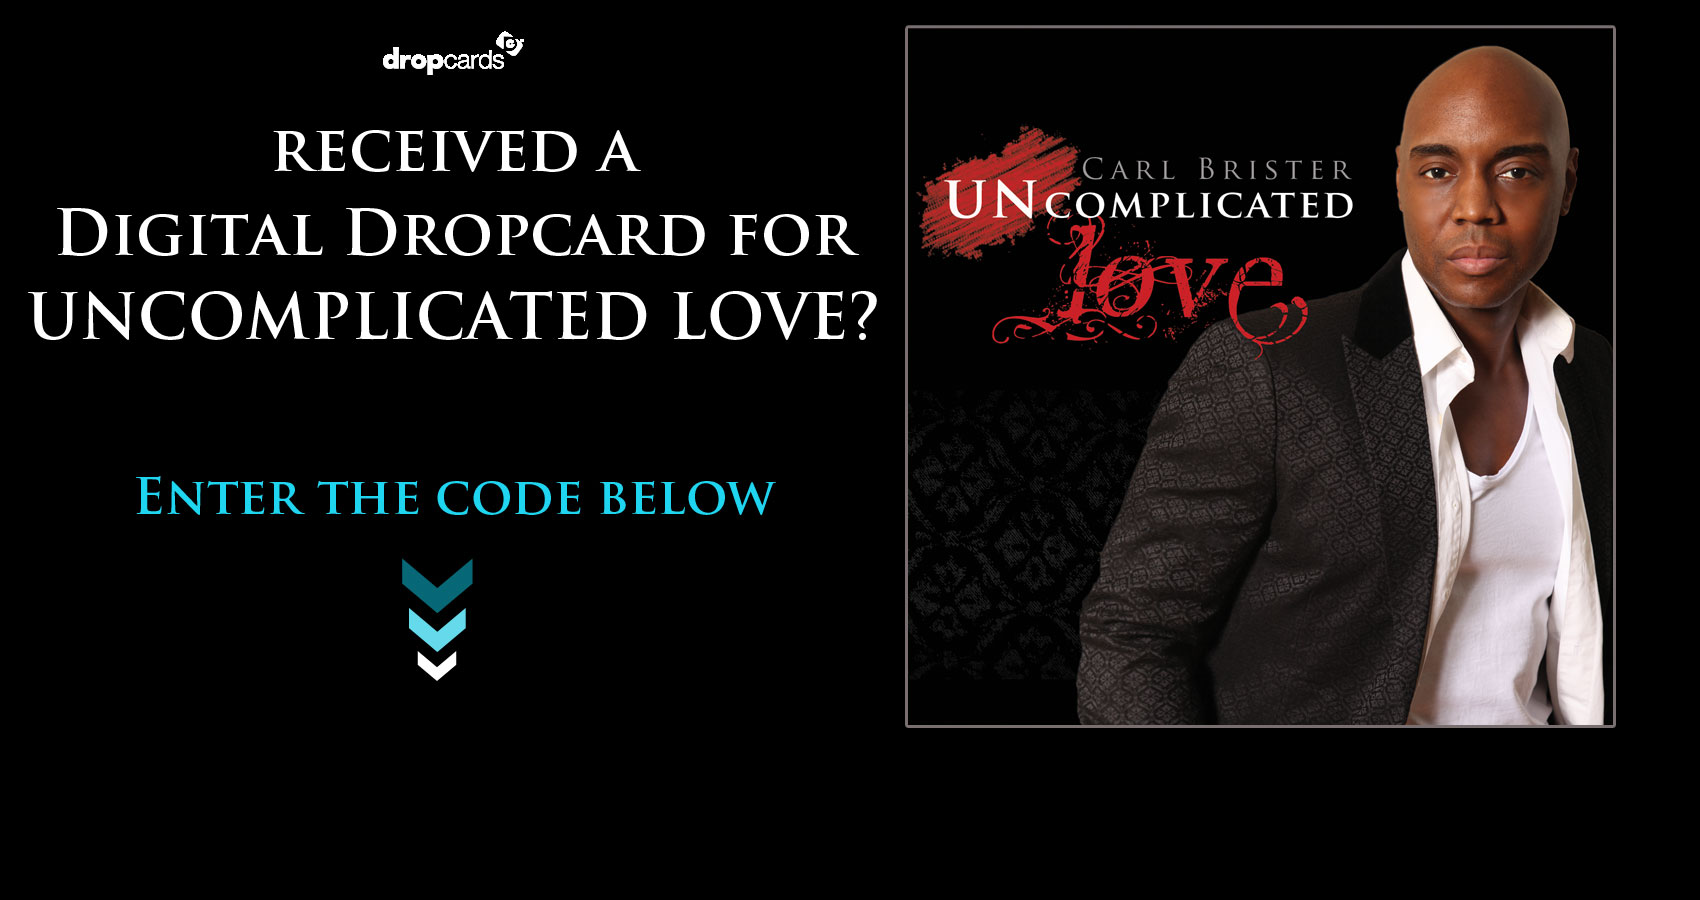 Received a Digital Dropcard for UNCOMPLICATED LOVE? Scroll down to enter the code below.